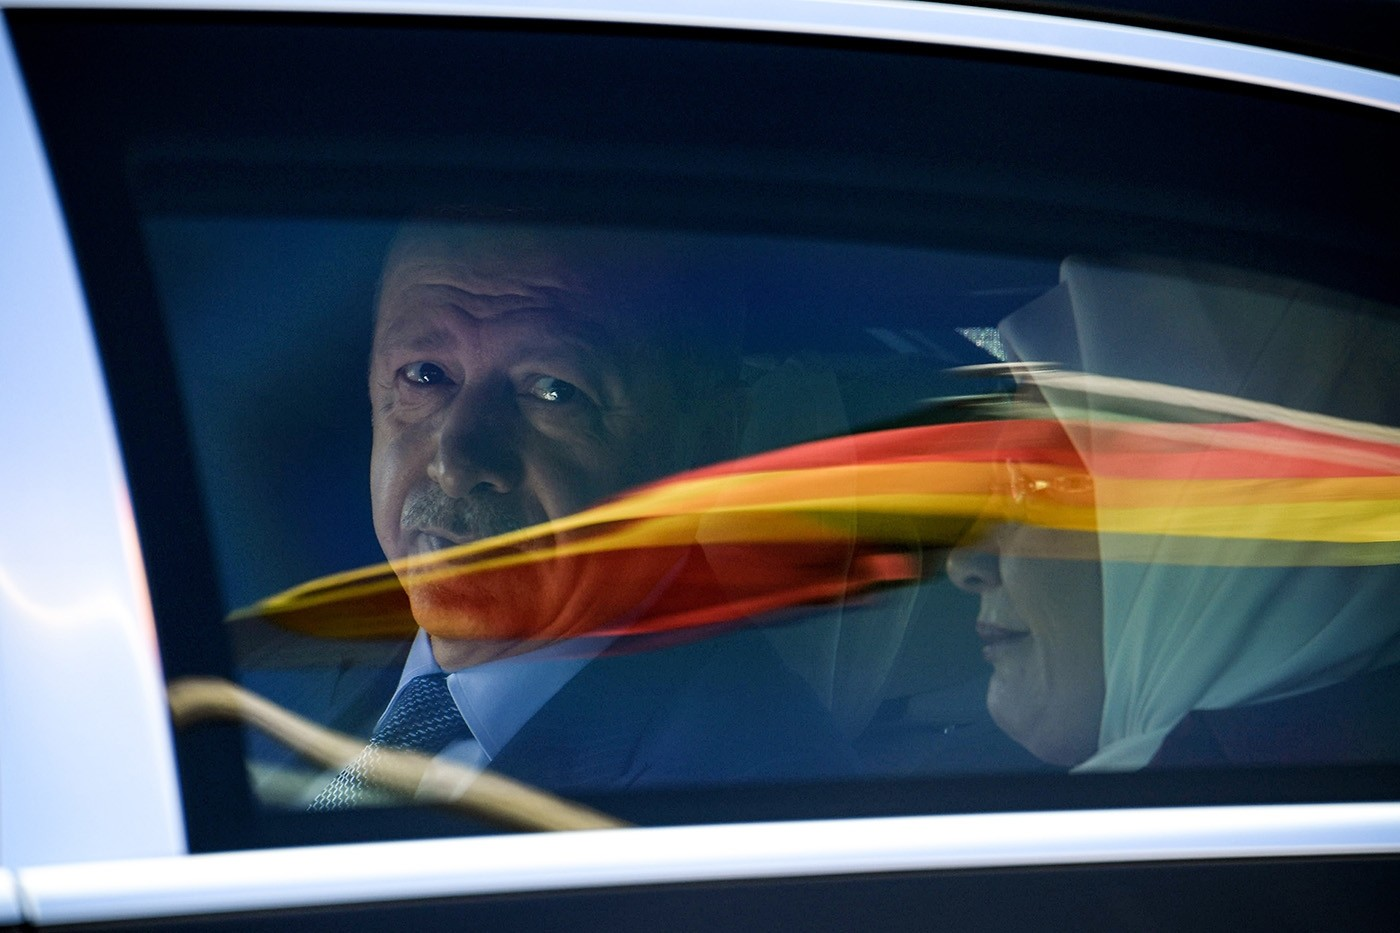 President Recep Tayyip Erdoğan sits in a car behind a reflection of the German flag as he departs after his arrival from the Berlin Tegel Airport for an official visit in Berlin, Germany, 27 September 2018. (EPA Photo)